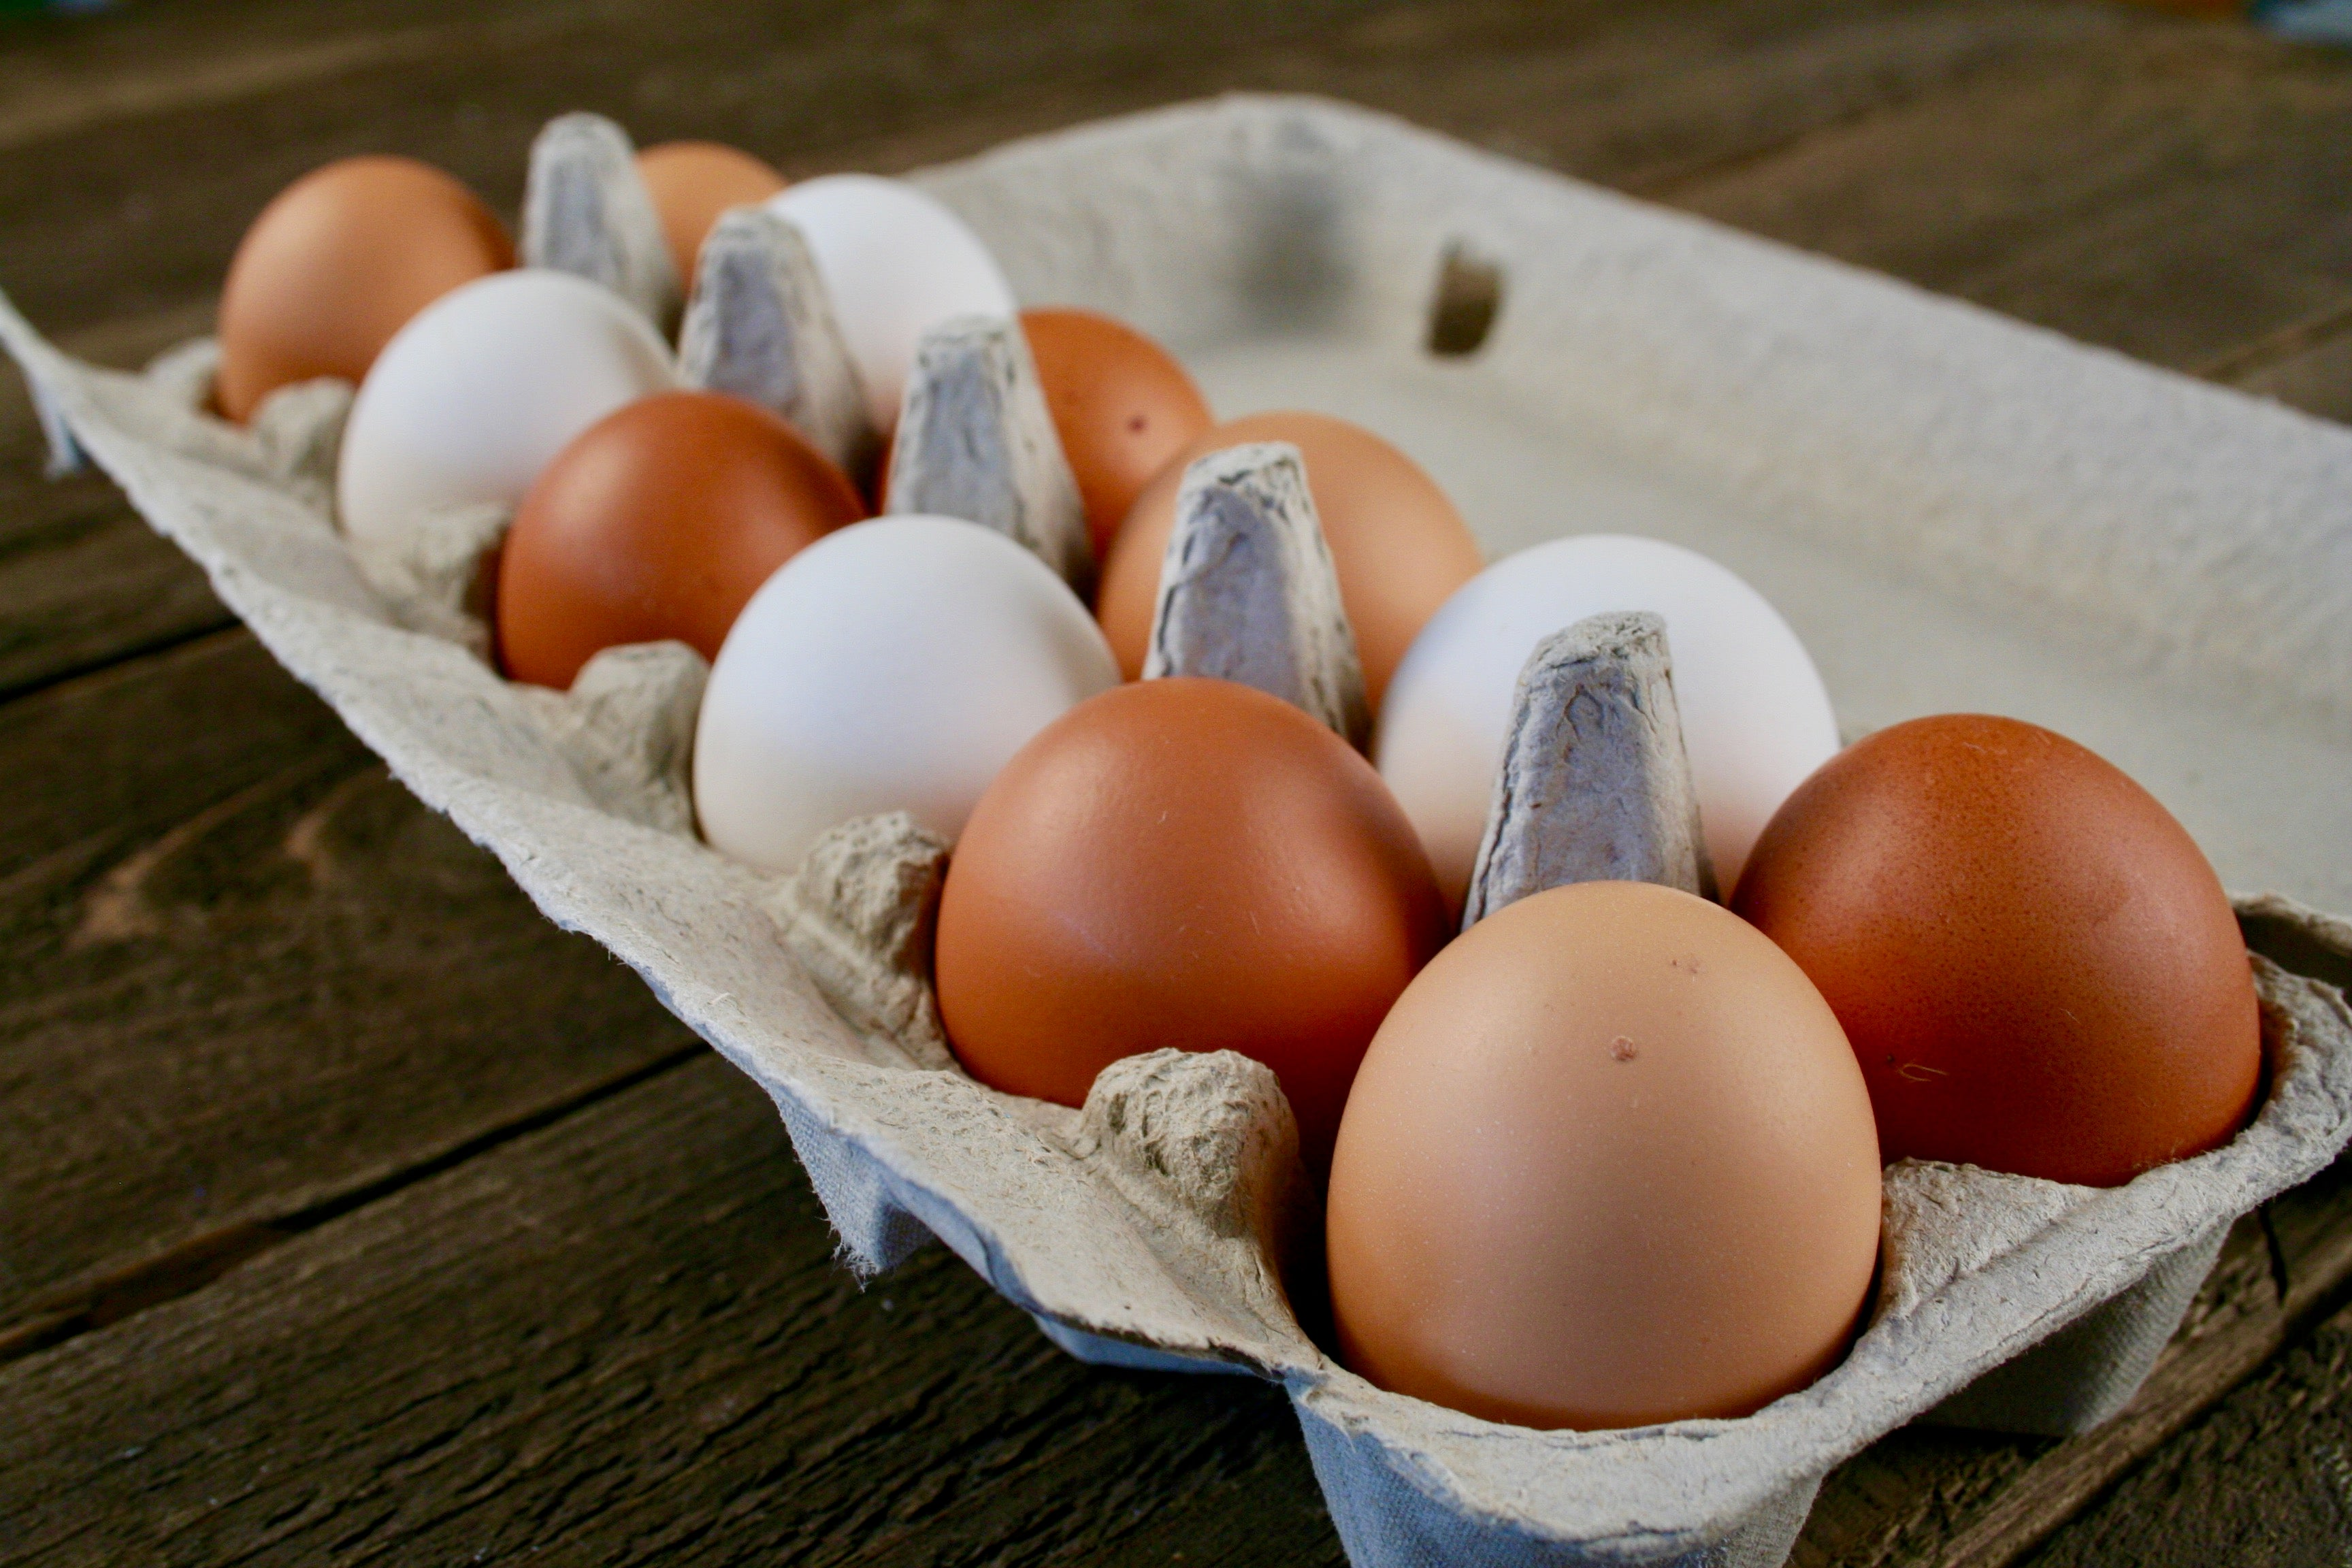 Local Pasture Raised Eggs | 1dz